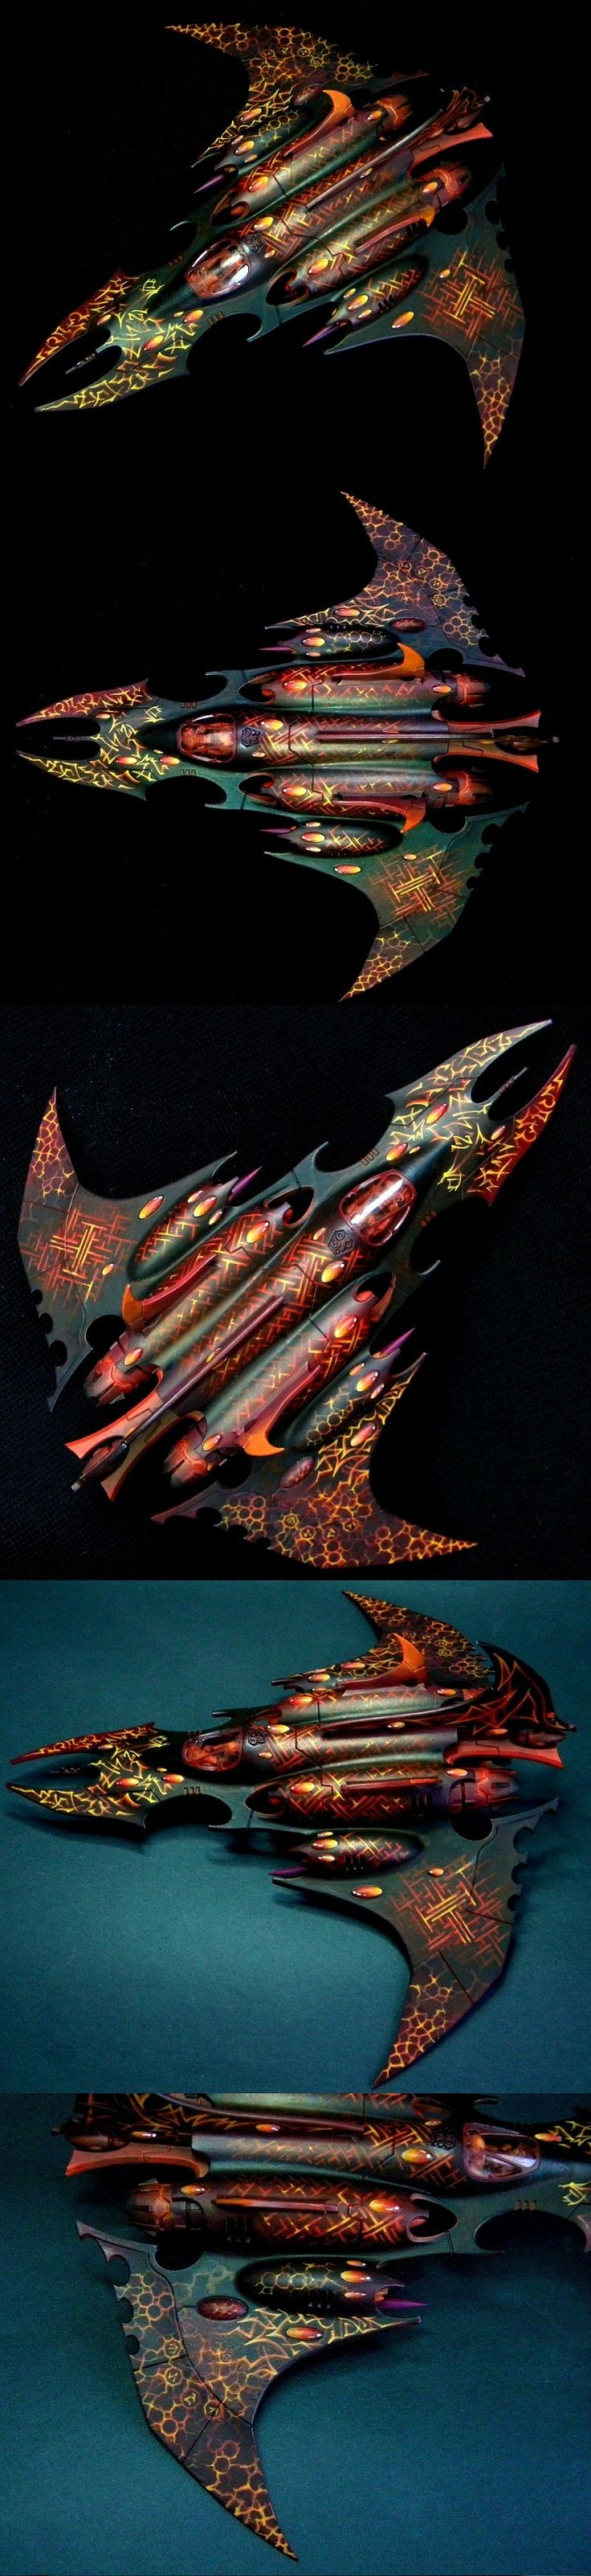 AMAZING painting work on #warhammer 40k - The Reflection of Darkness, Dark Eldar Razorwing by Hors